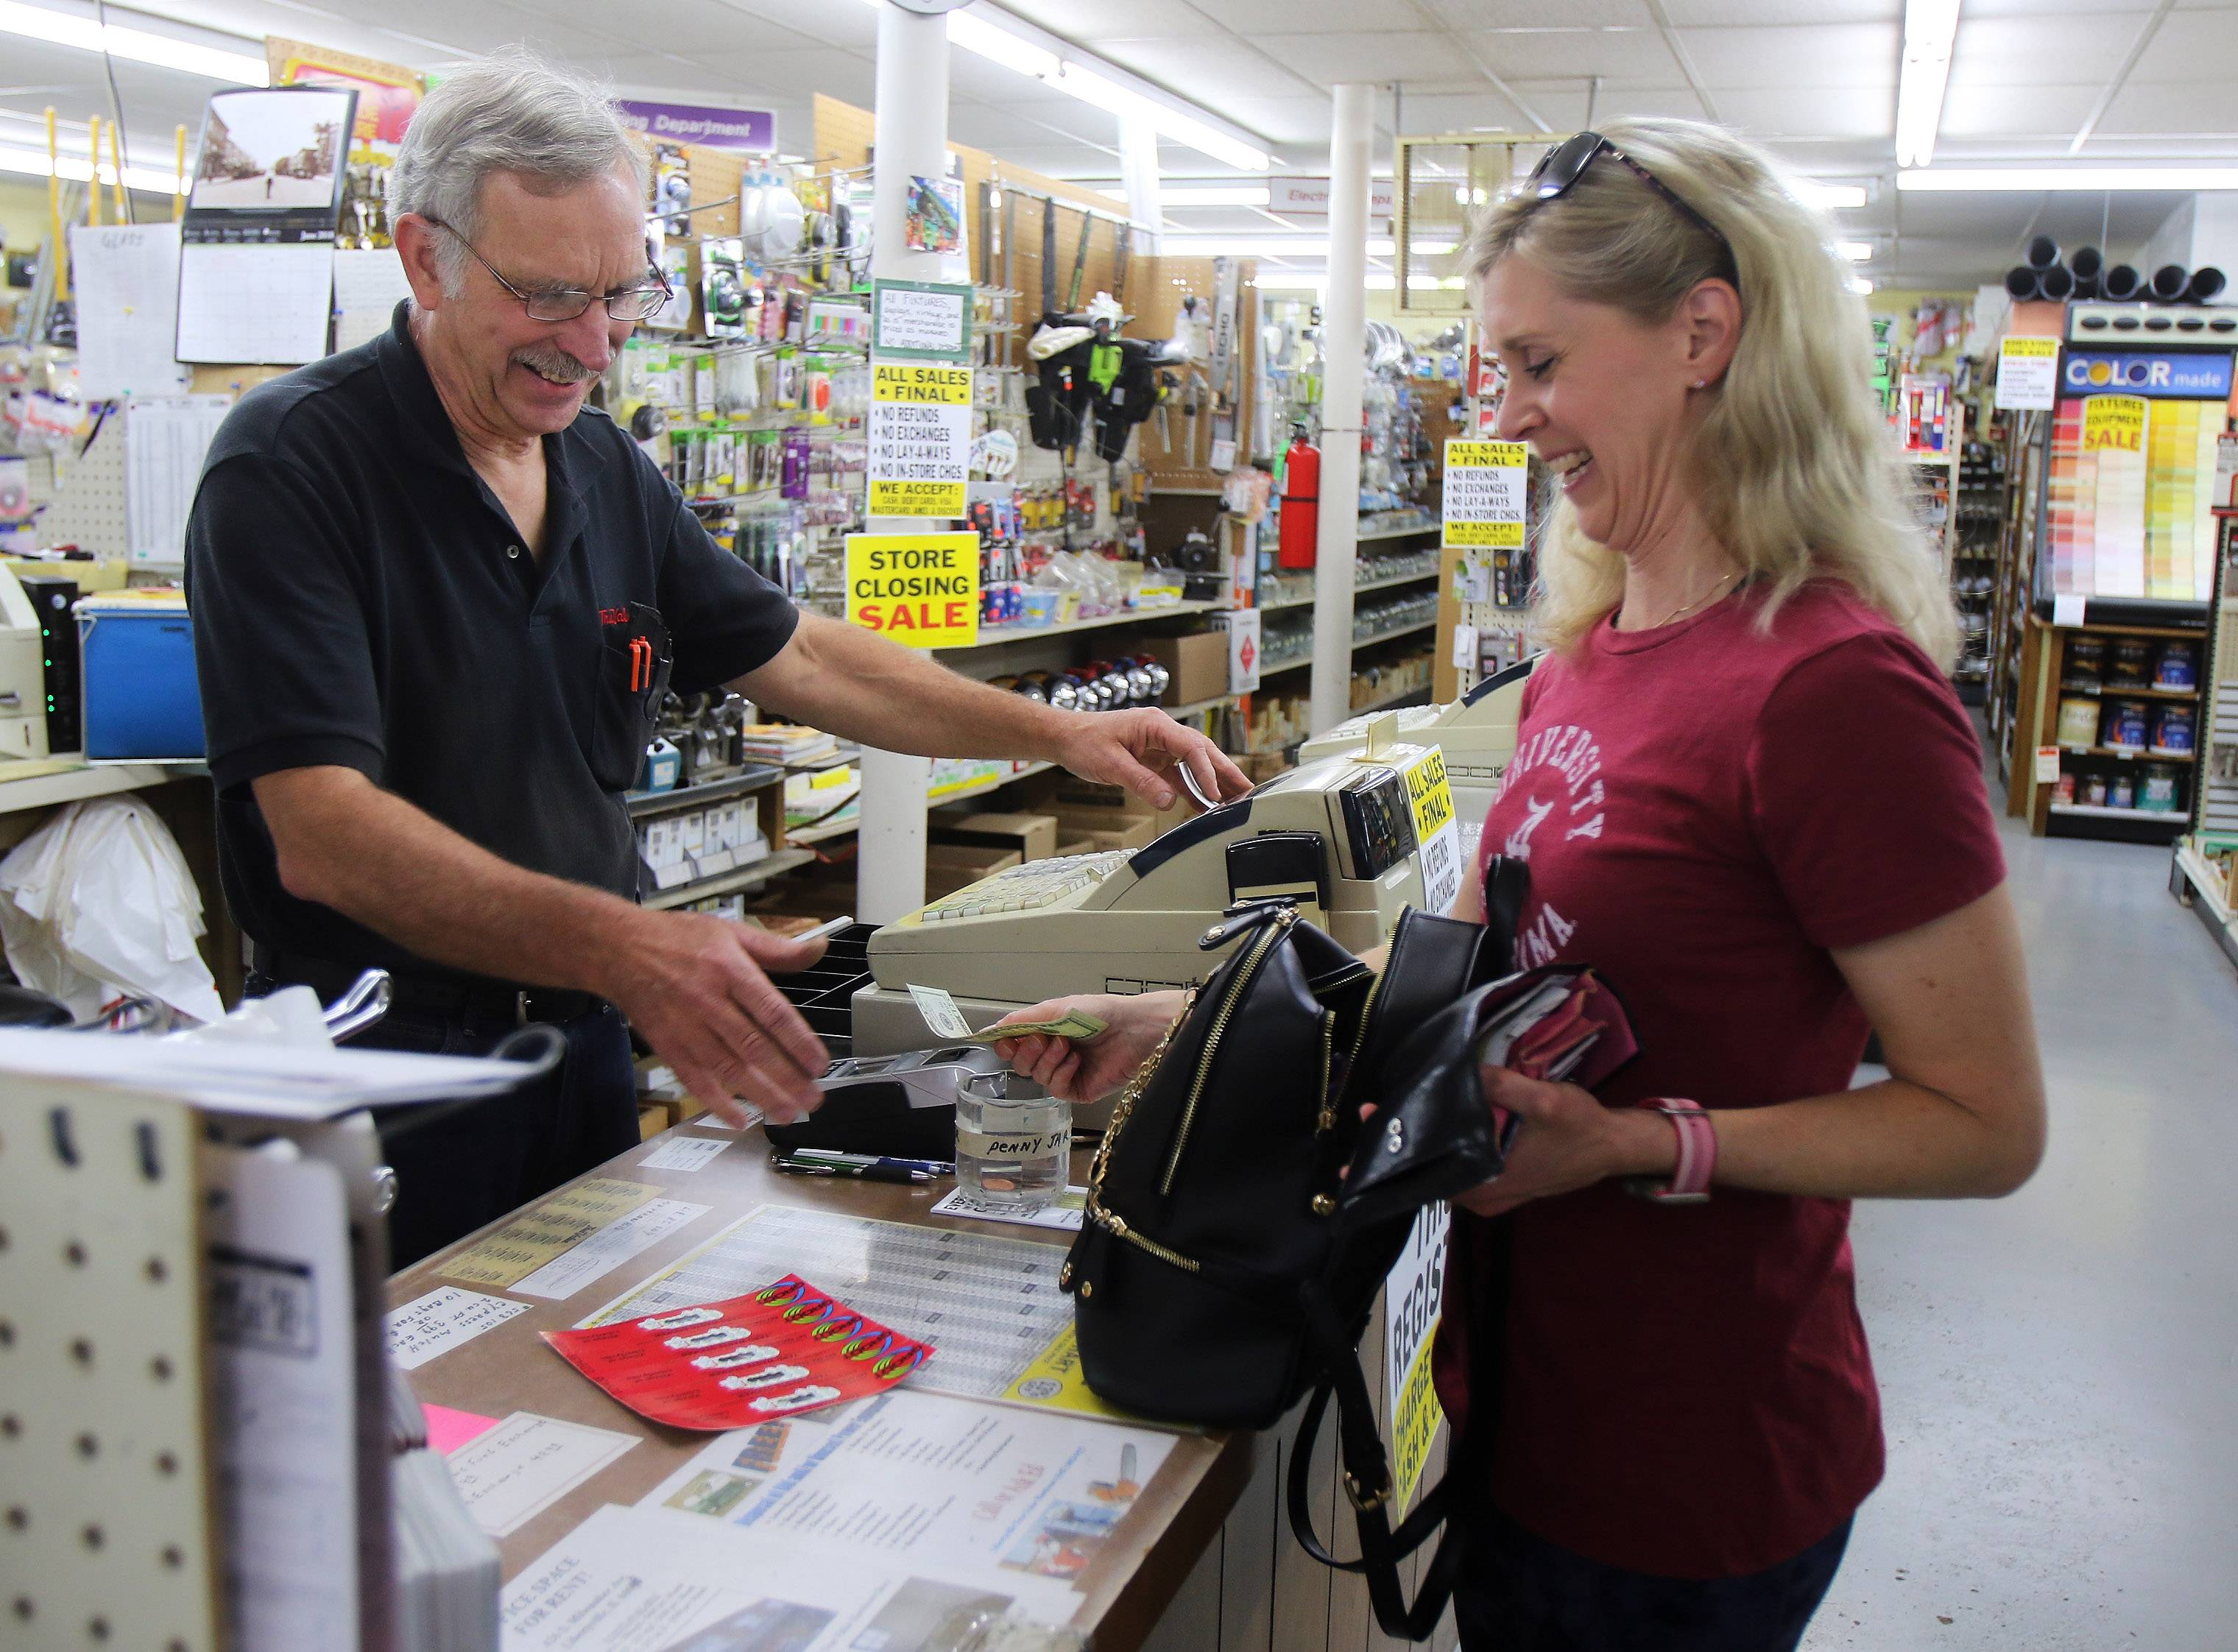 Owner Ed LeJeune talks to customer Cindy Poland at the Libertyville True Value on Tuesday. The hardware store is closing and a liquidation sale begins Wednesday.